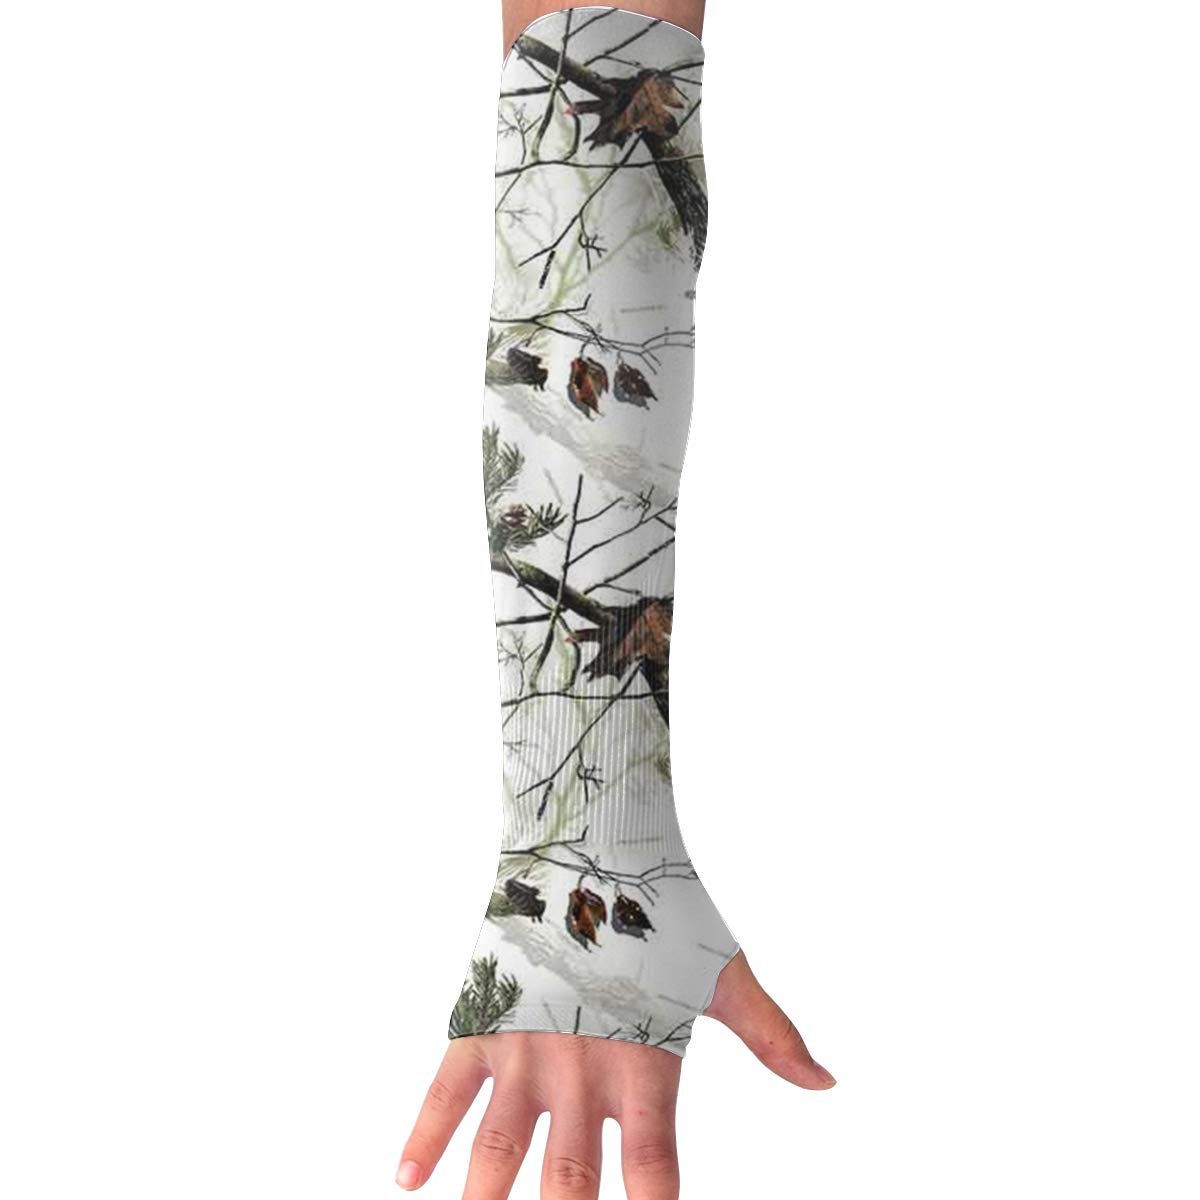 Ruin Gloves White Realtree Camo UV Protection Cooling Arm Sleeves Glove for Men Women Sunblock Cooler Protective Sports